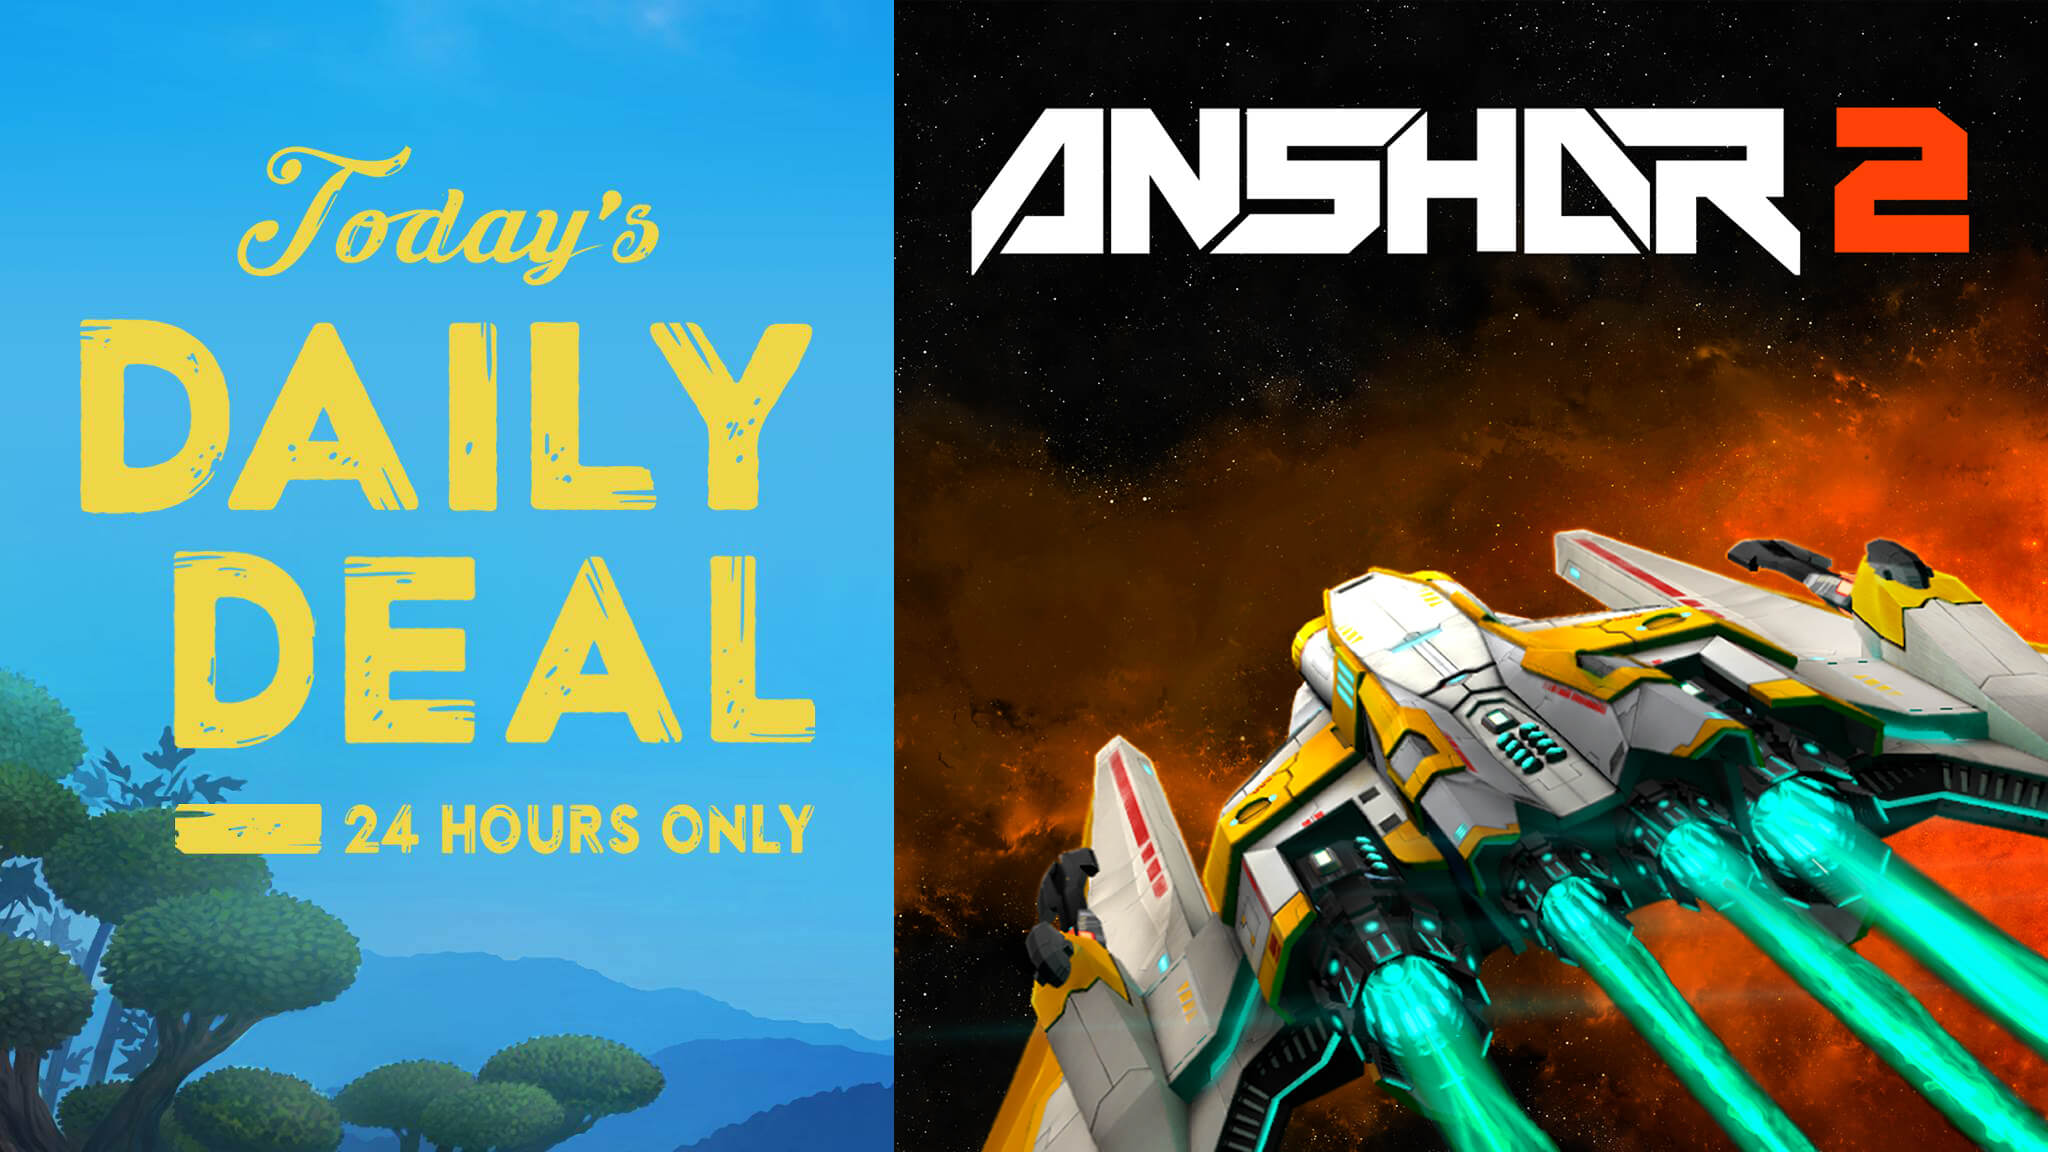 VR Sales - 24 hours only